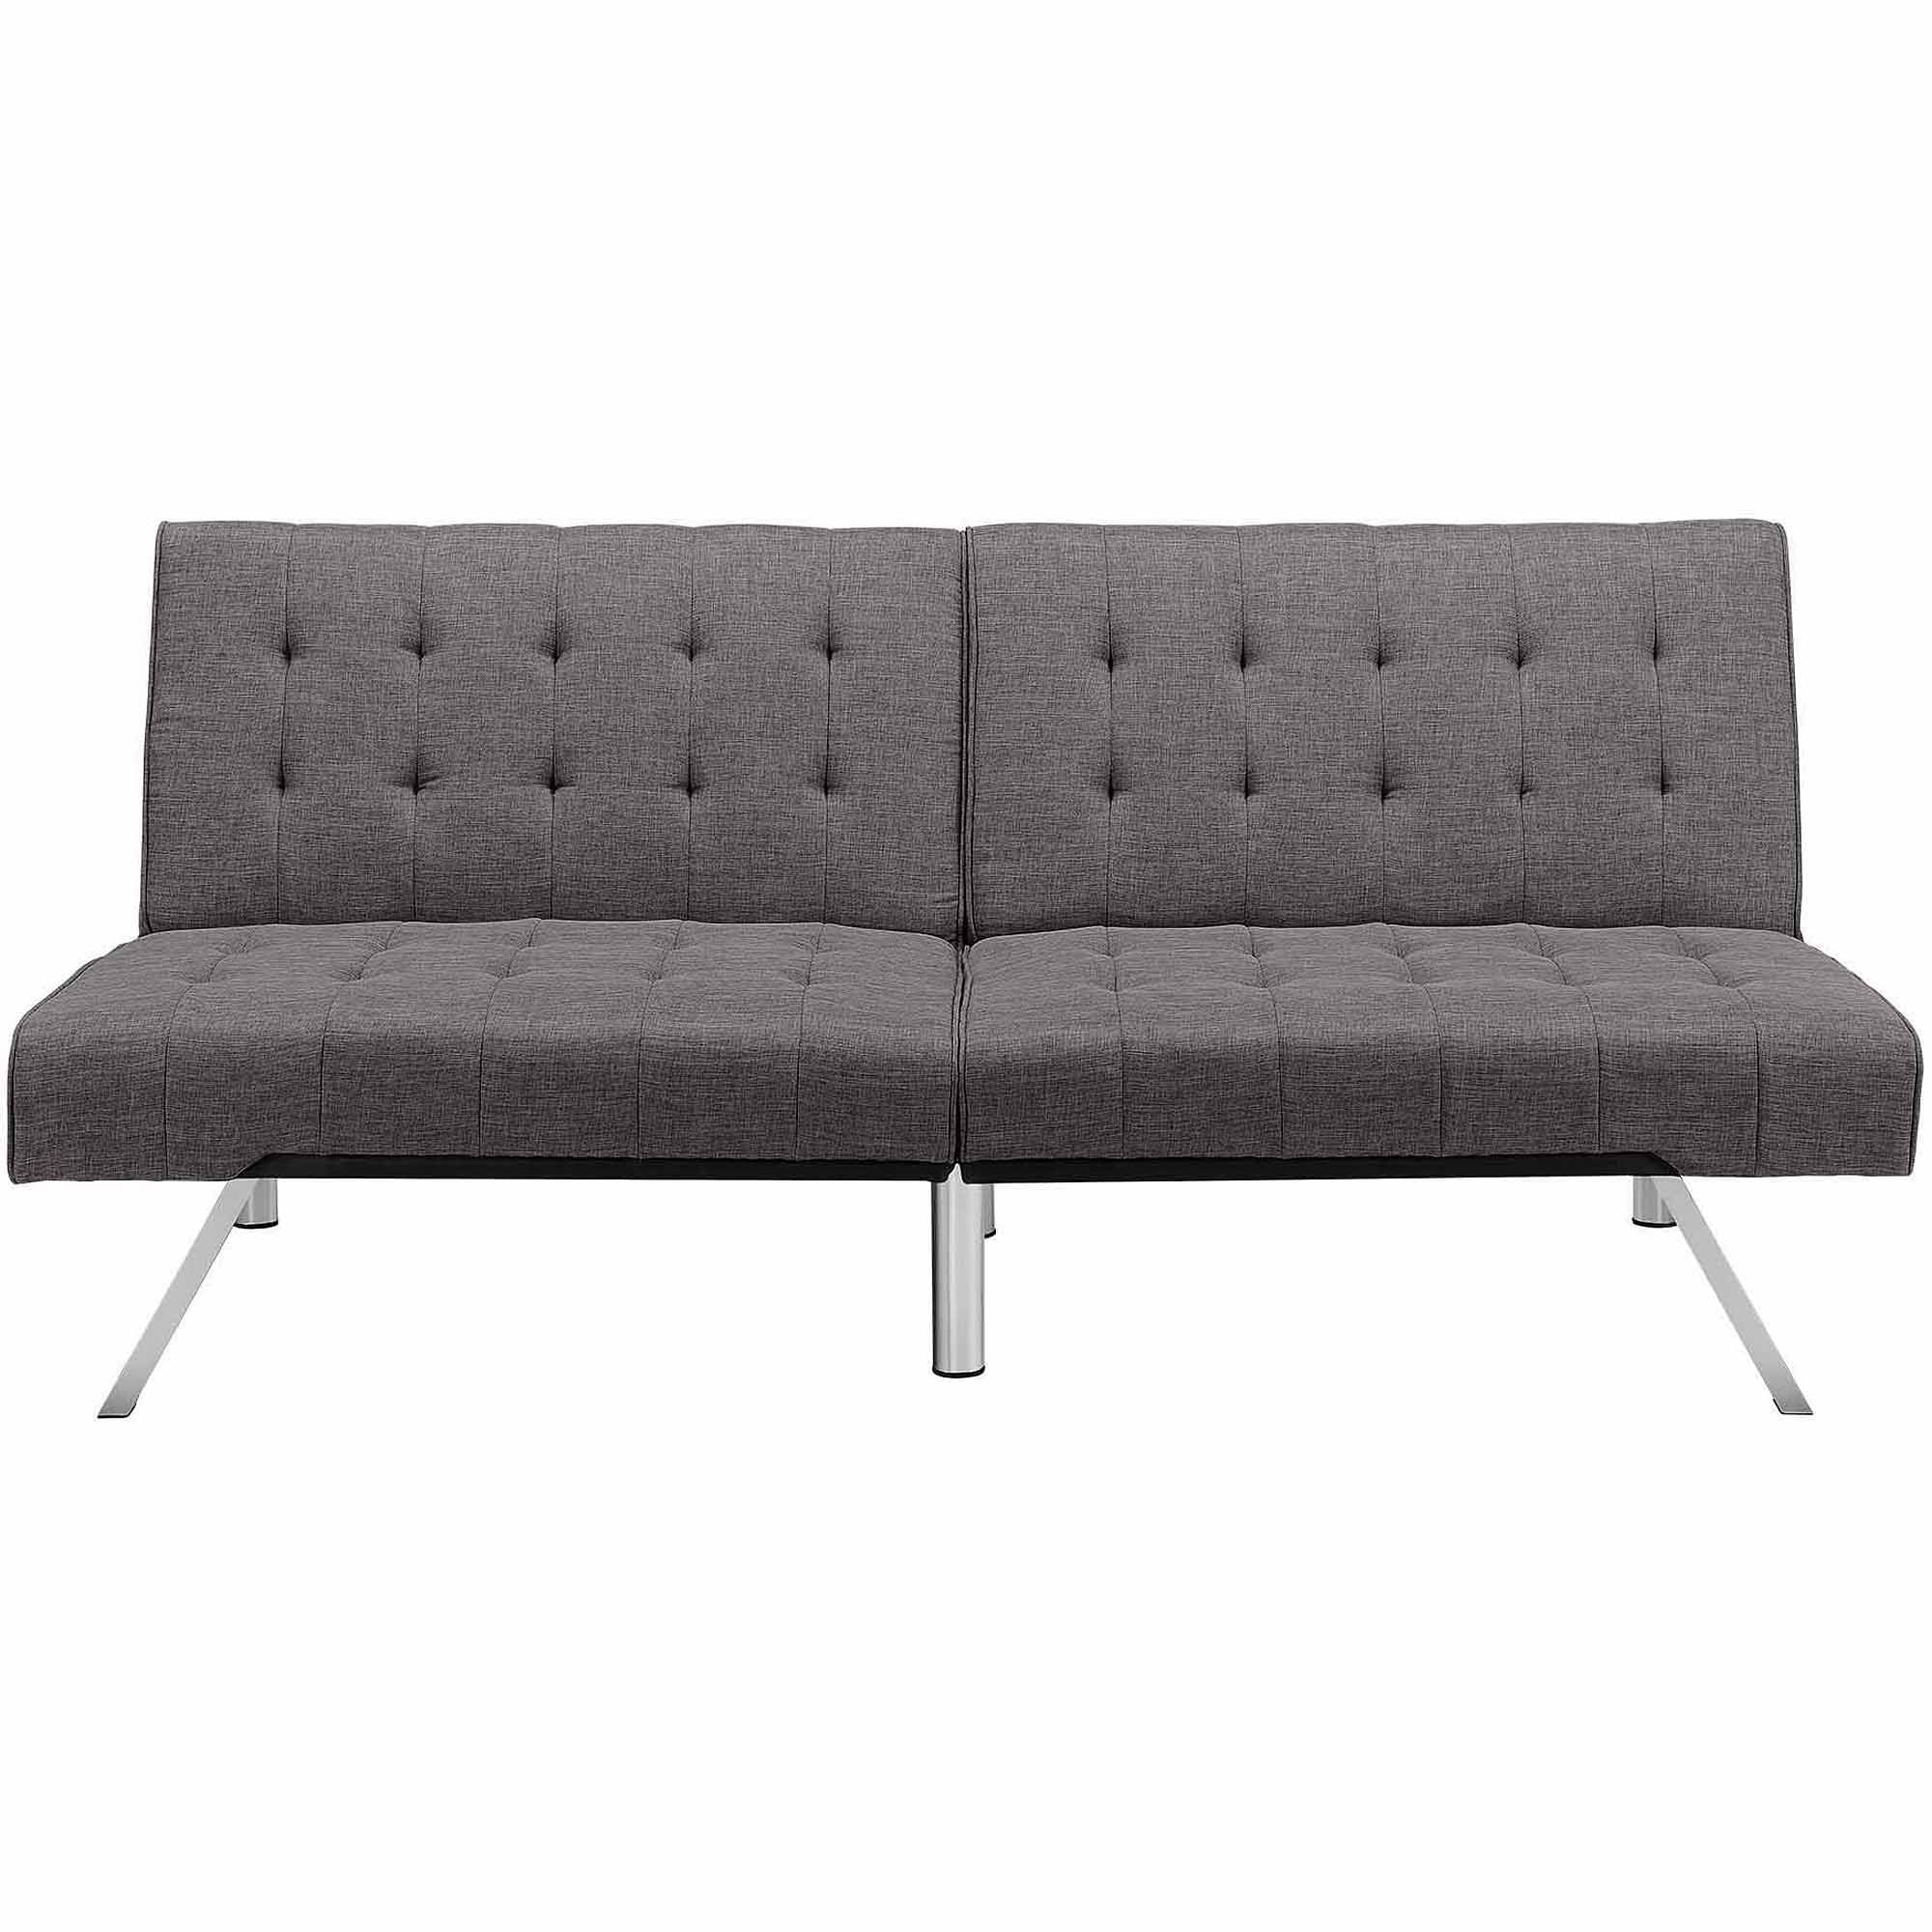 ltd less ikea sizes mattress futon unique in futons amp of elegant for size beds recalls all sofa mattresses